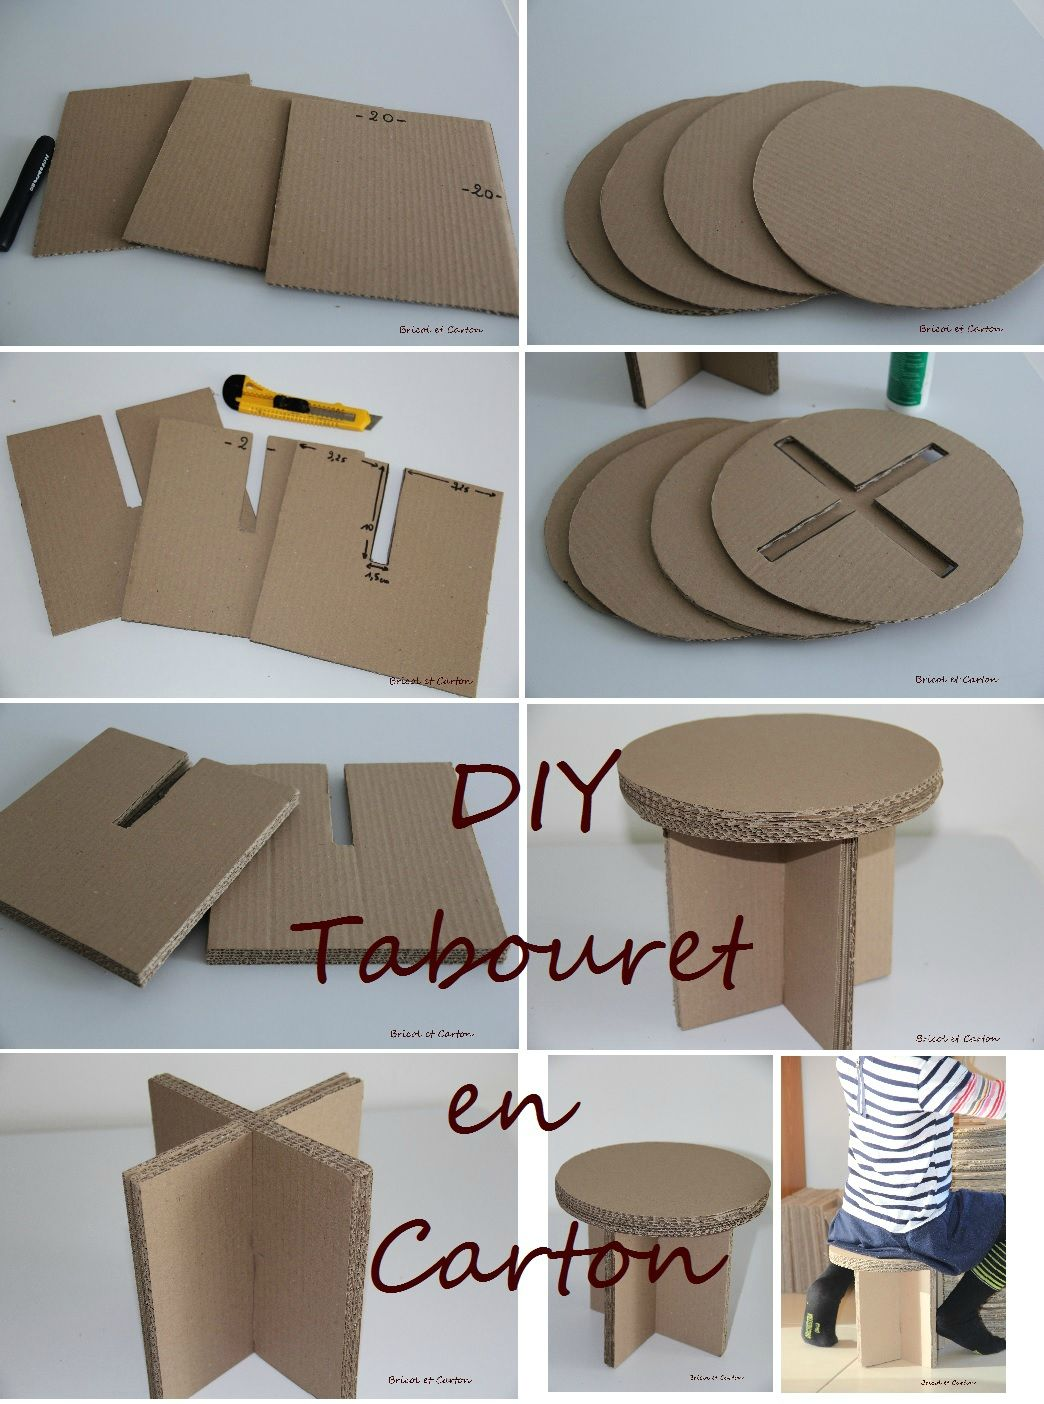 diy tabouret en carton bricol et carton cart n pinterest pappe karton und m bel. Black Bedroom Furniture Sets. Home Design Ideas